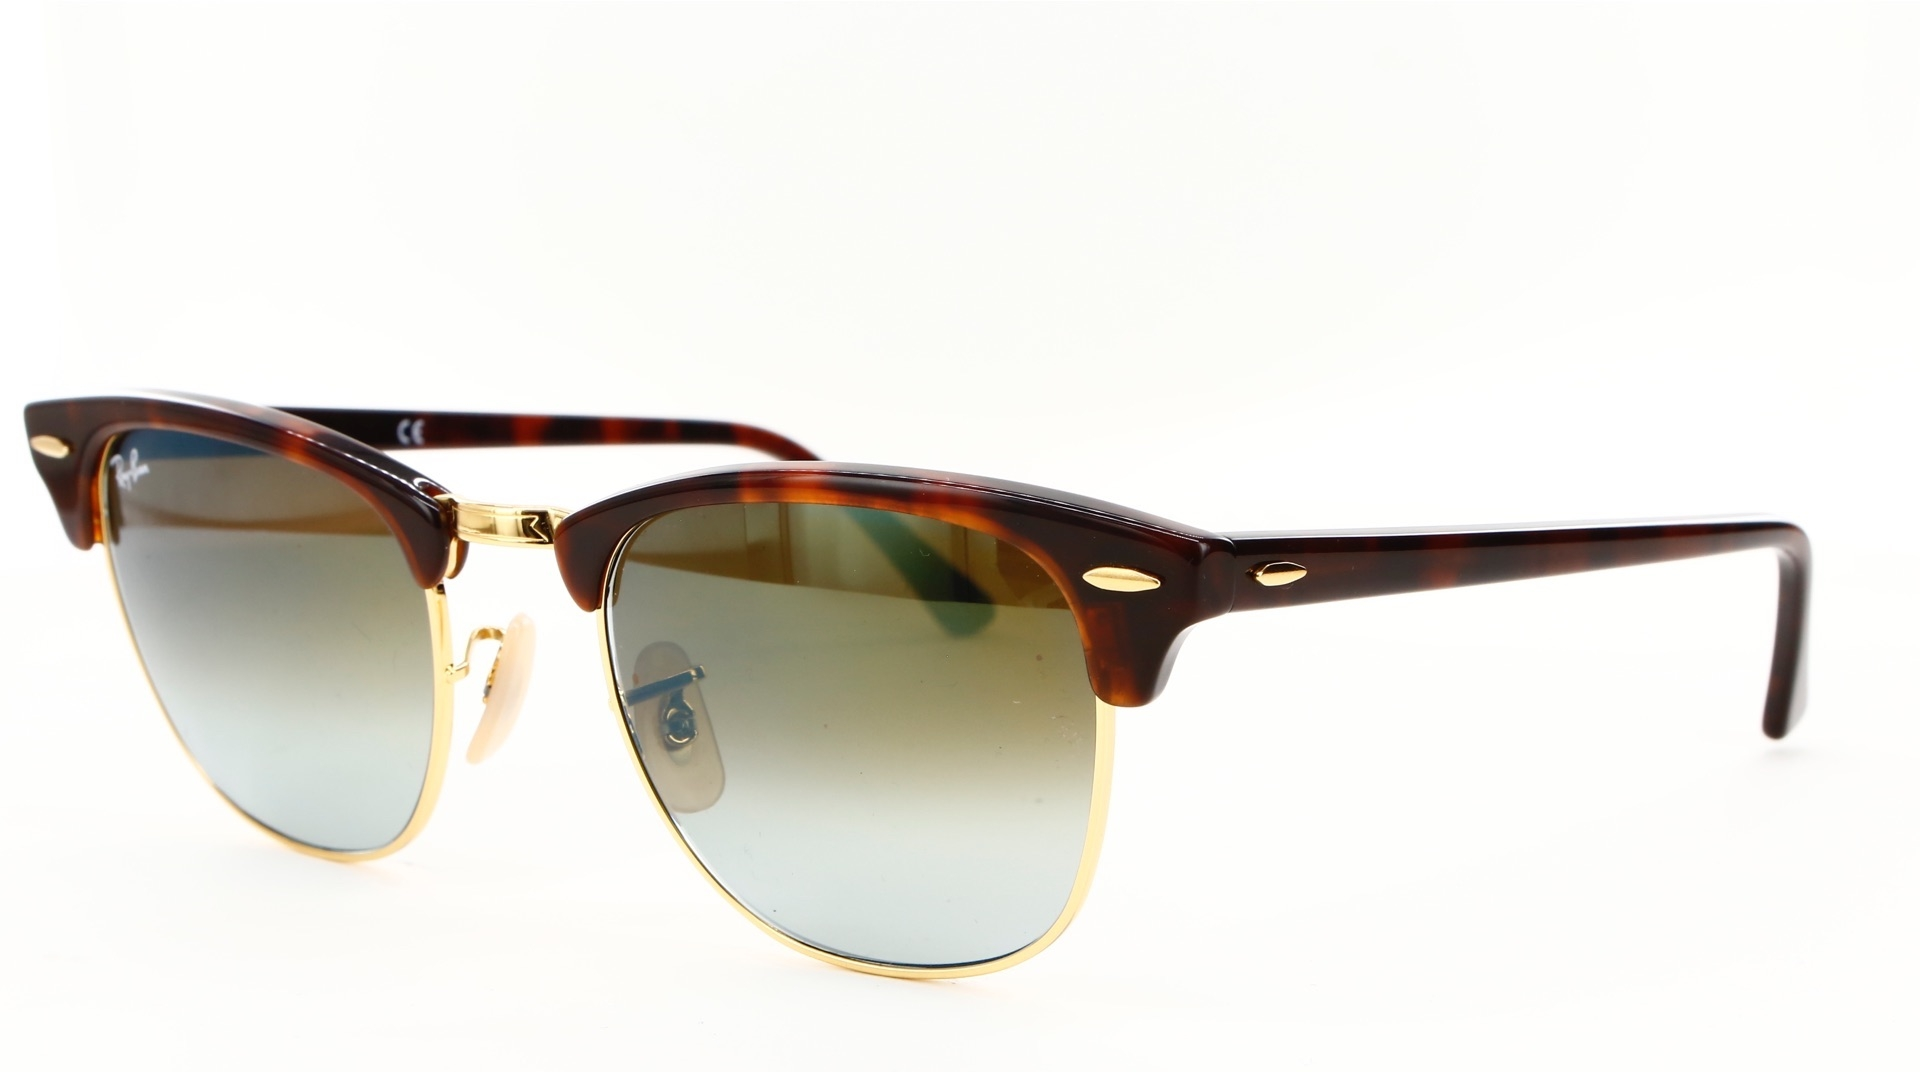 Ray-Ban - ref: 76894